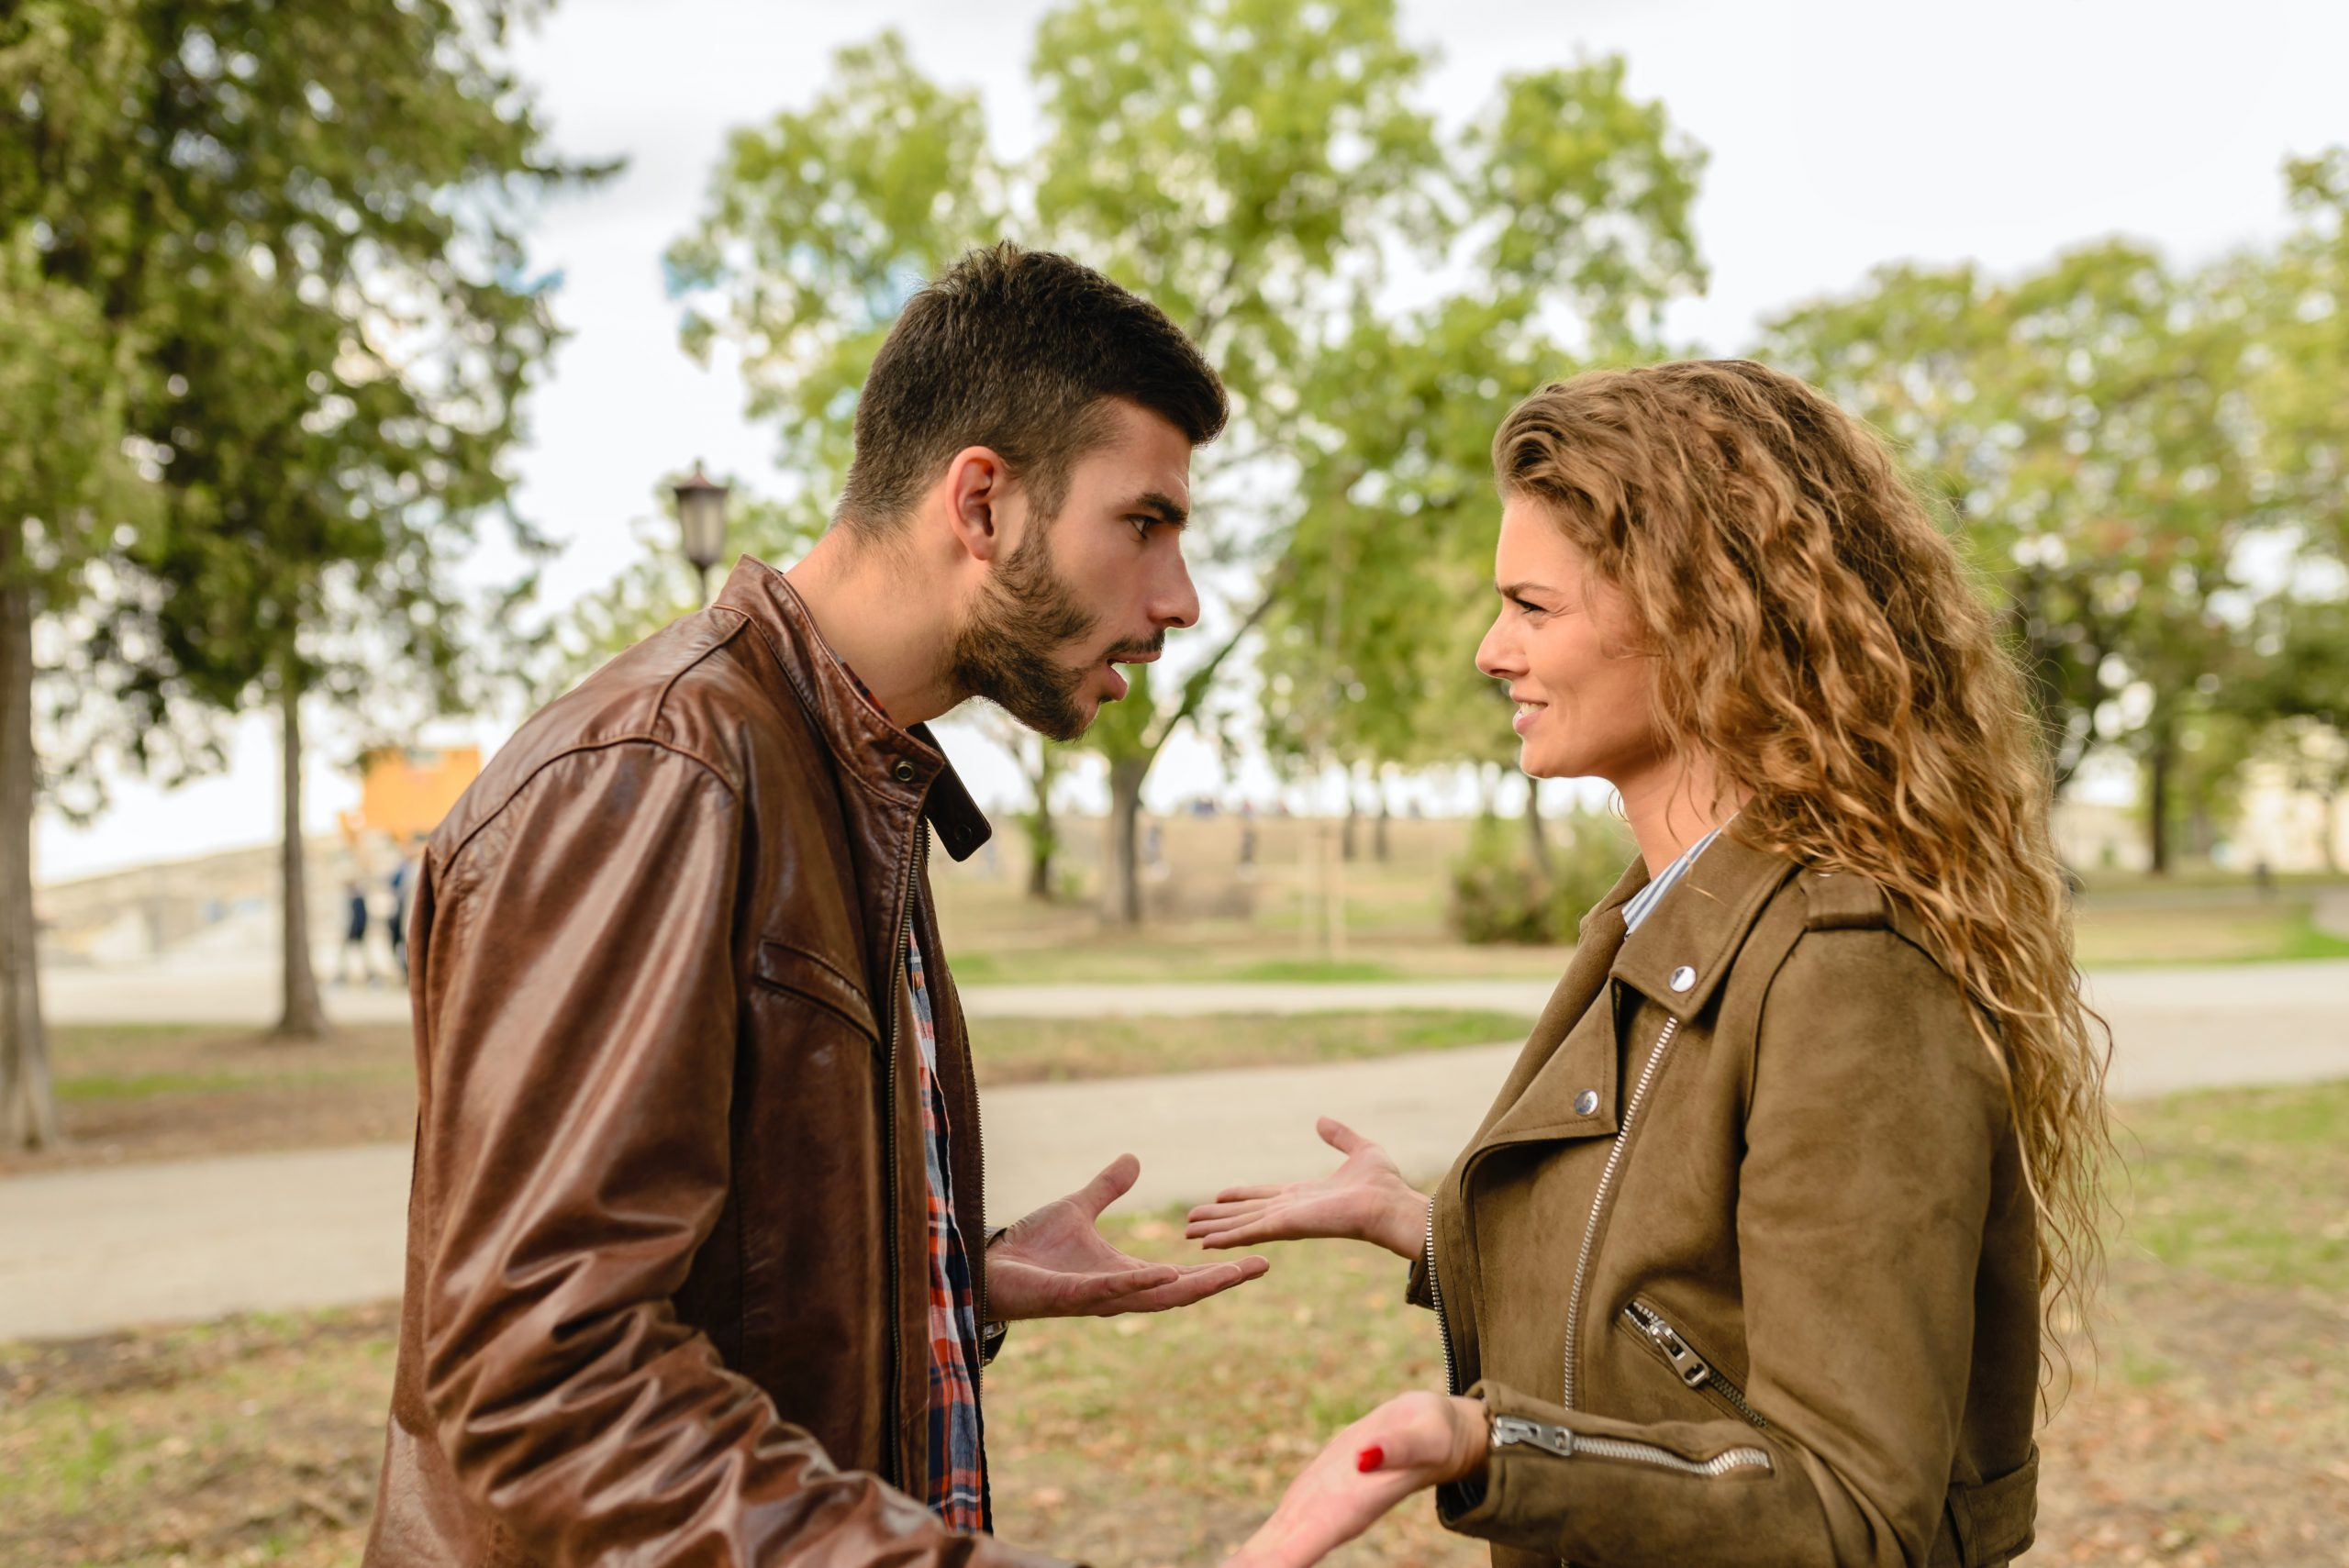 gaslighting couple fighting outisde